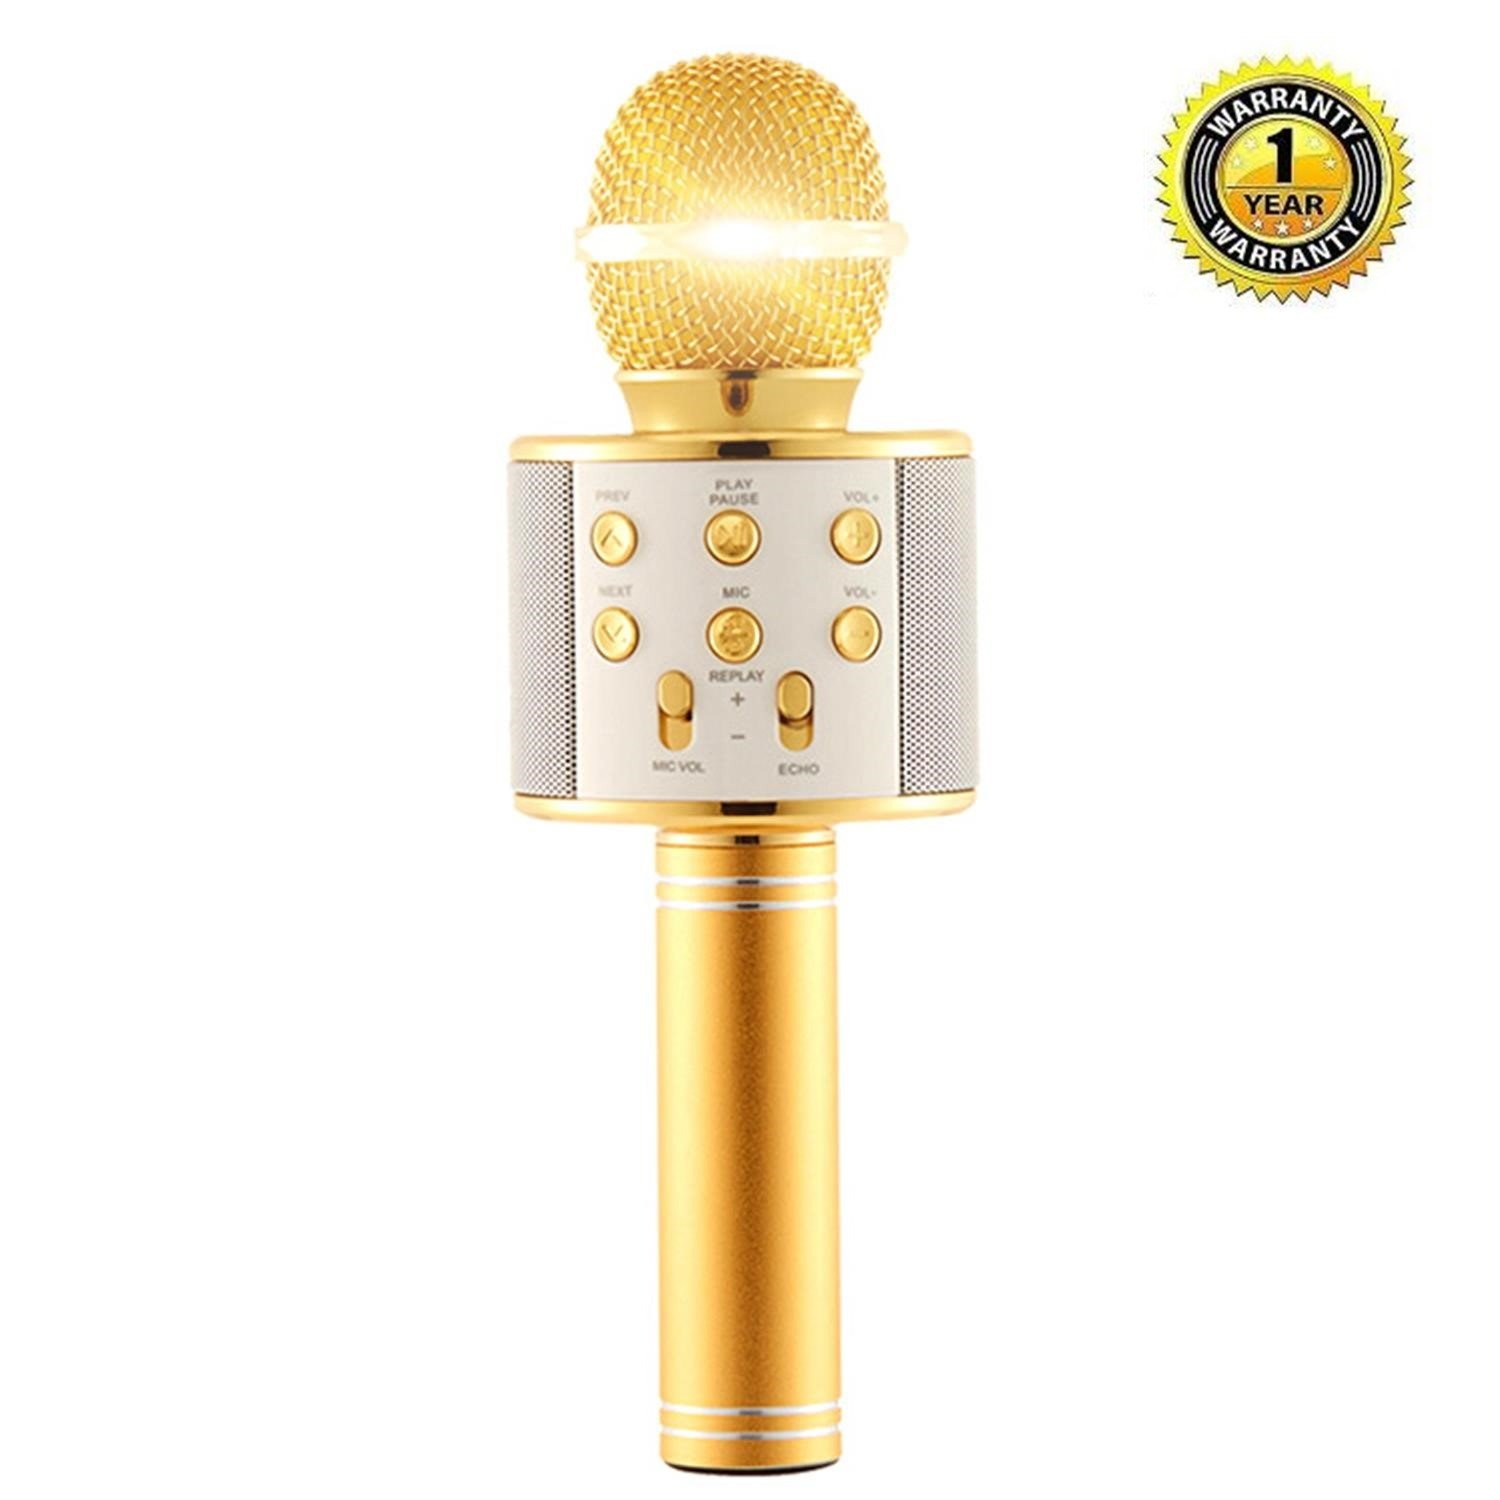 Karaoke Microphone Wireless with Bluetooth Speaker for iPhone Android PC Smartphone Portable Handheld Microphone for Singing Recording Interviews or Kids Home KTV Party - Light Golden